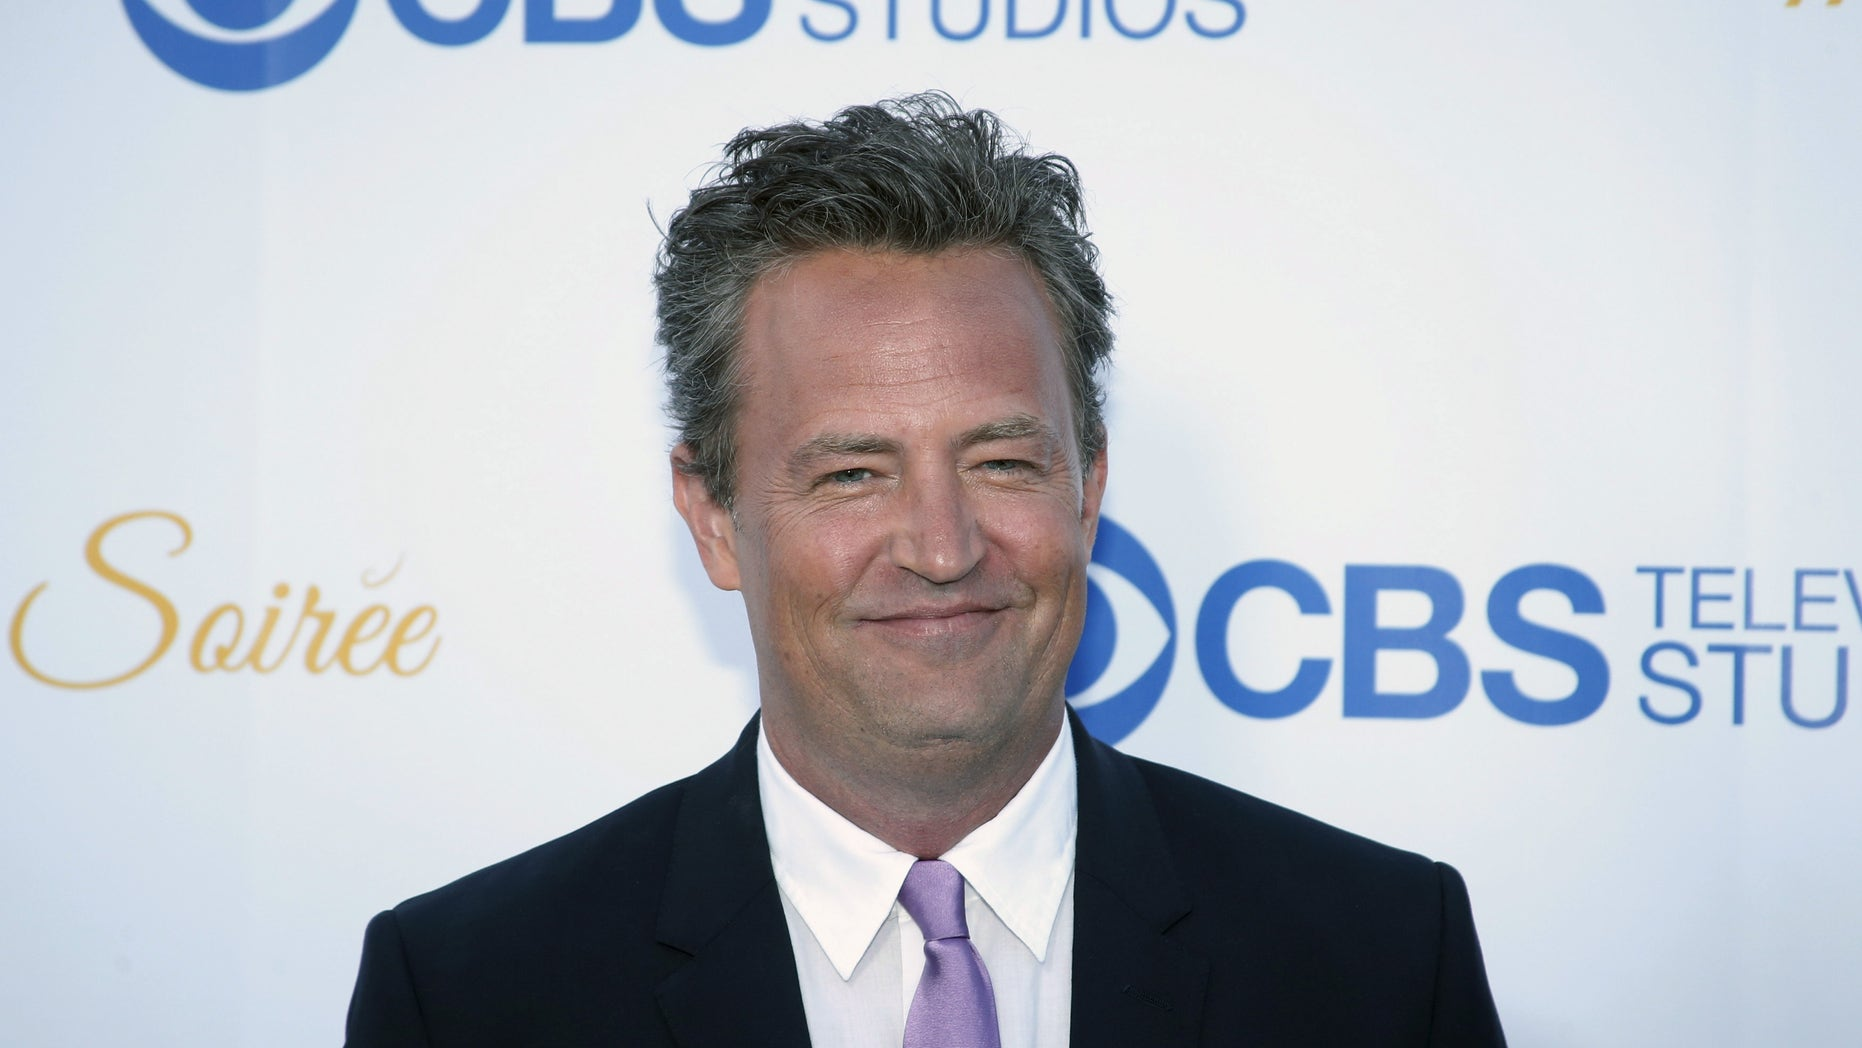 Matthew Perry left a cryptic tweet about getting kicked out of therapy that has fans curious.